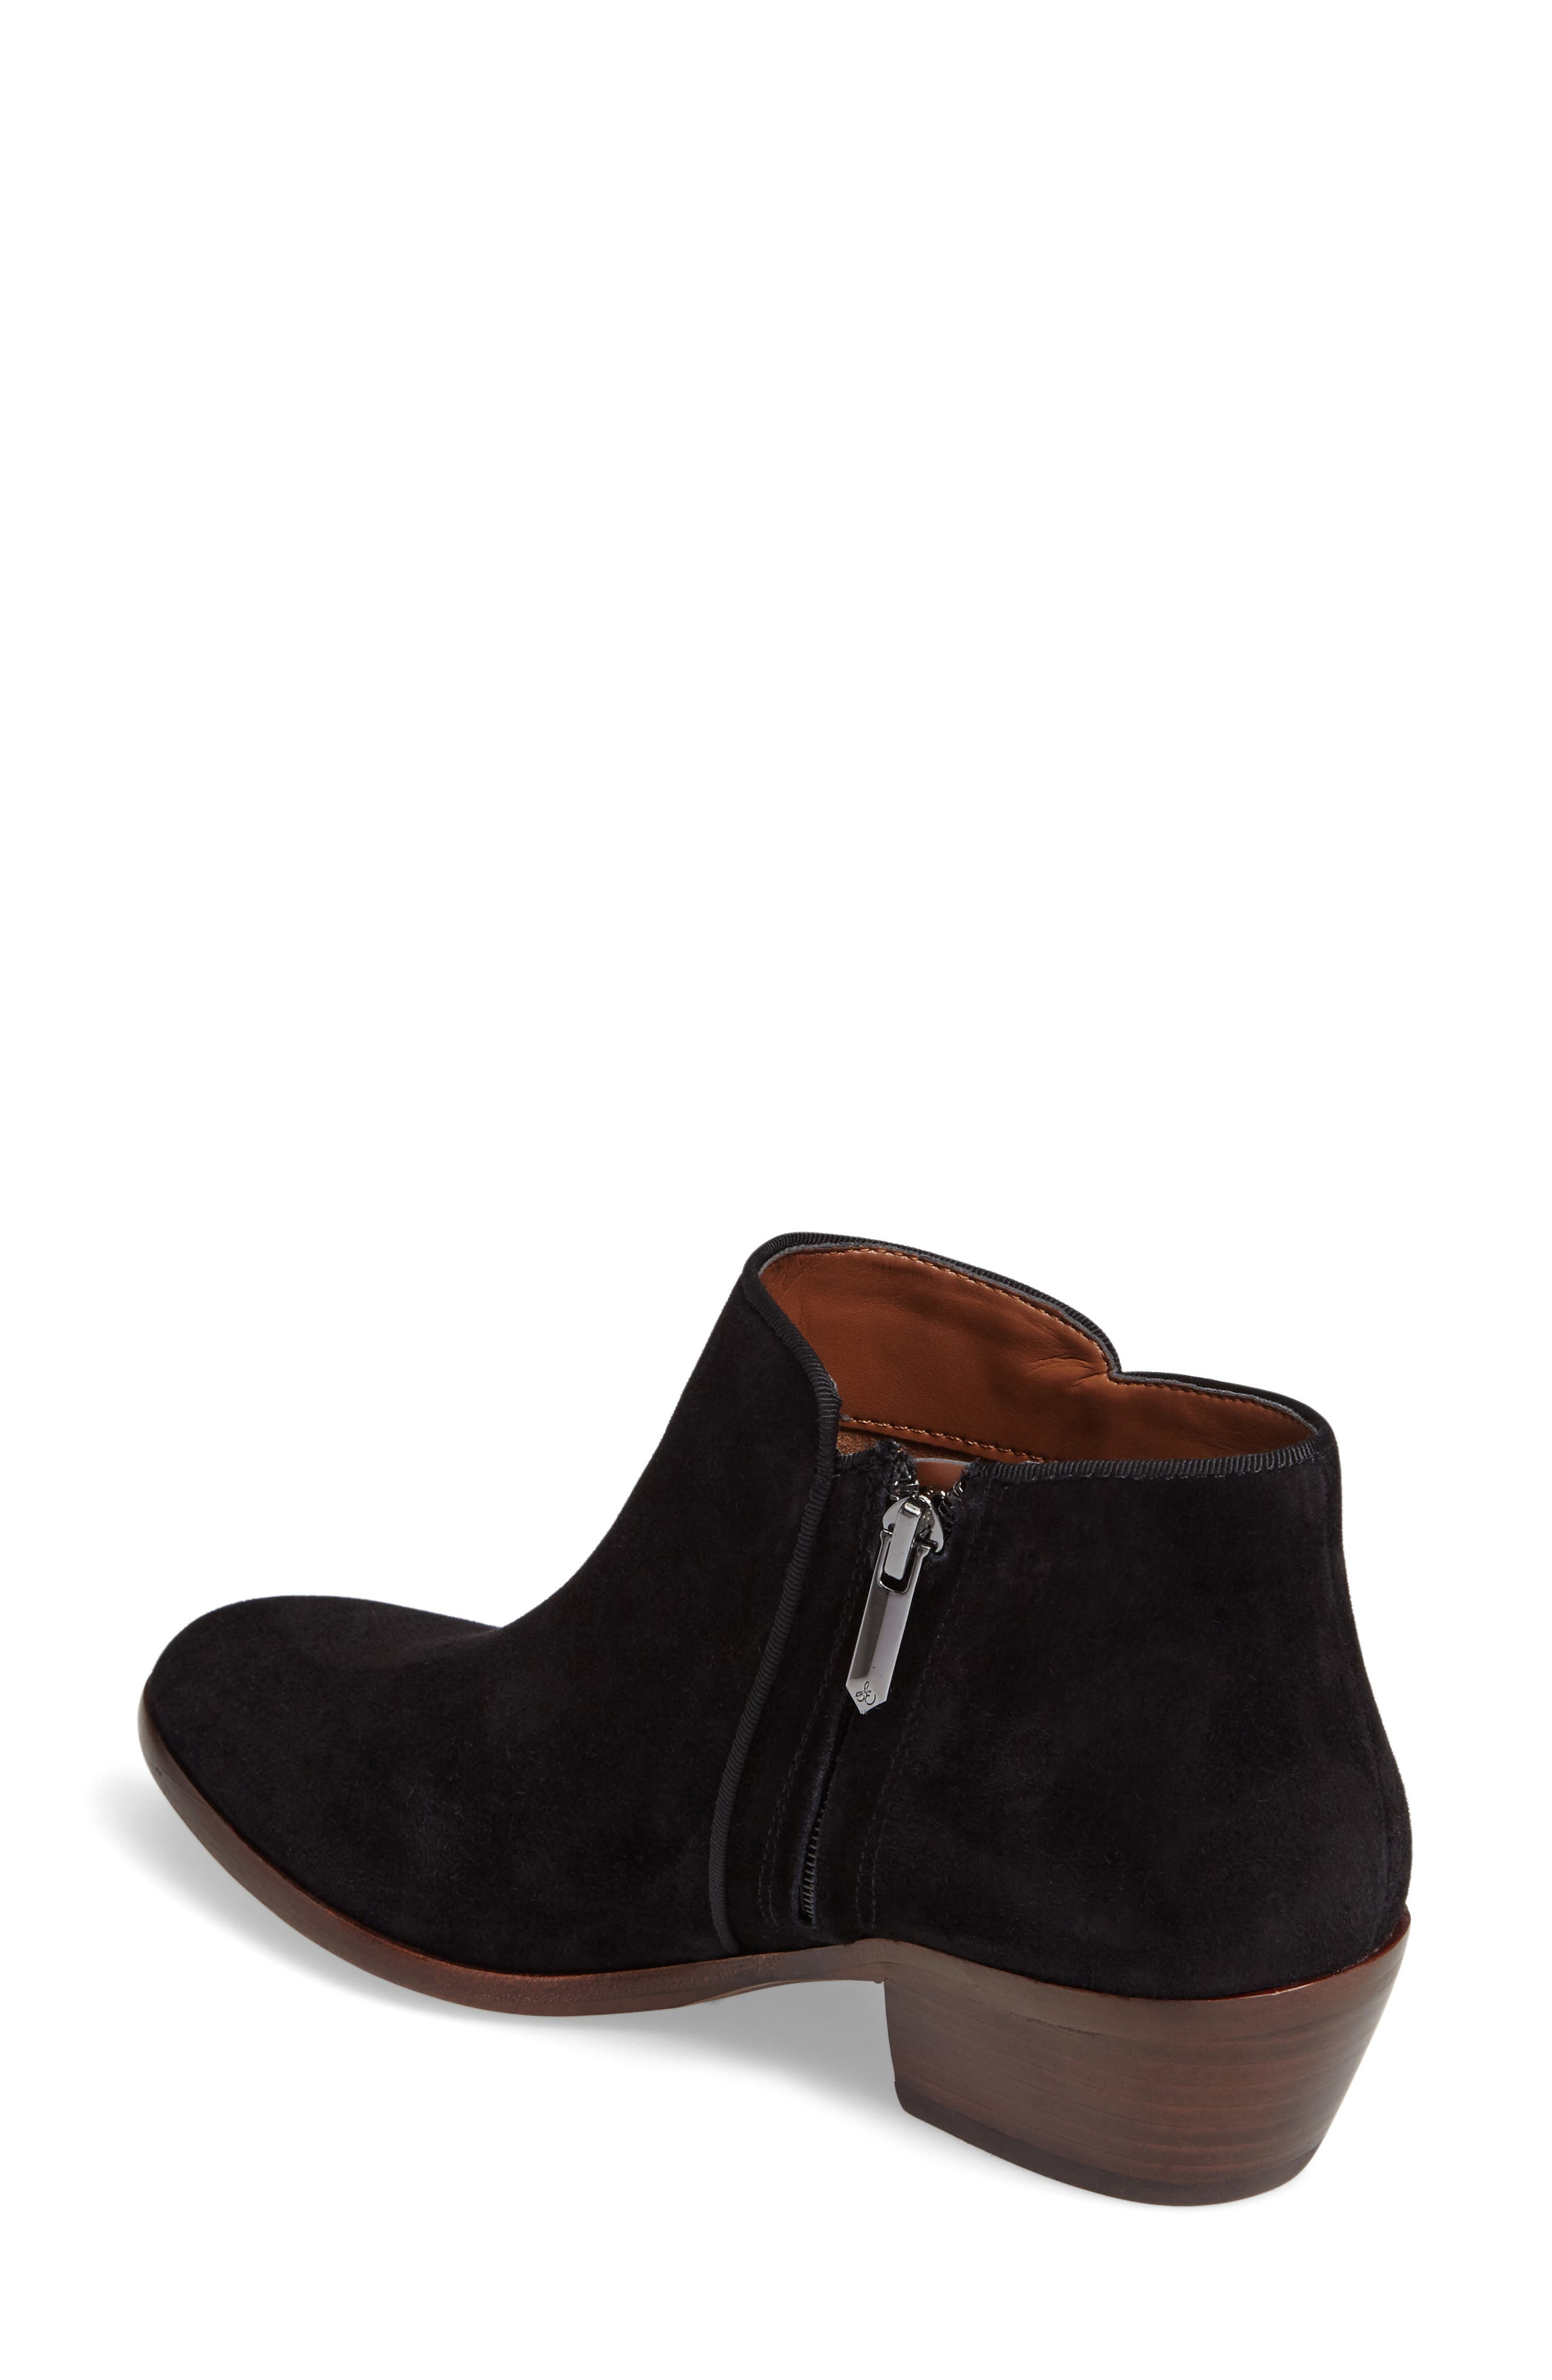 'Petty' Chelsea Boot,                             Alternate thumbnail 3, color,                             BLACK SUEDE